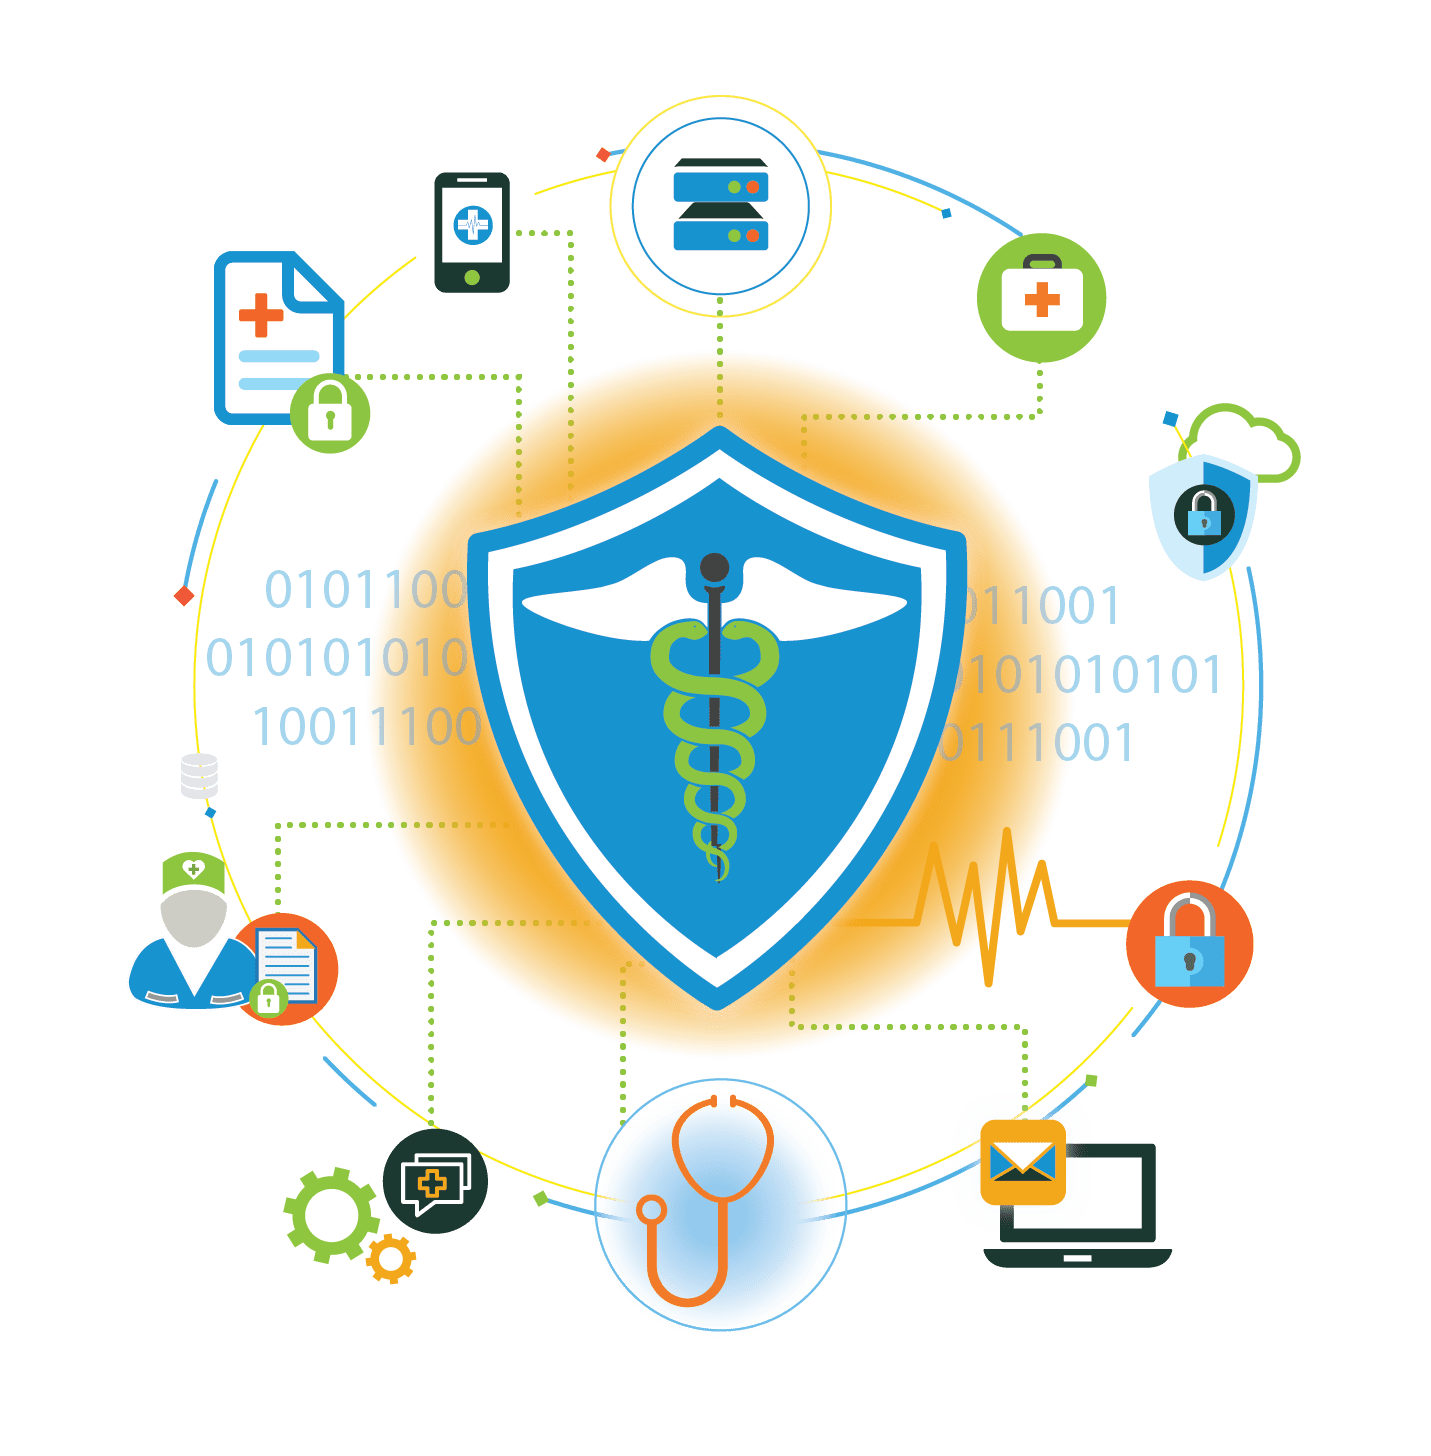 Partage de documents conforme HIPAA